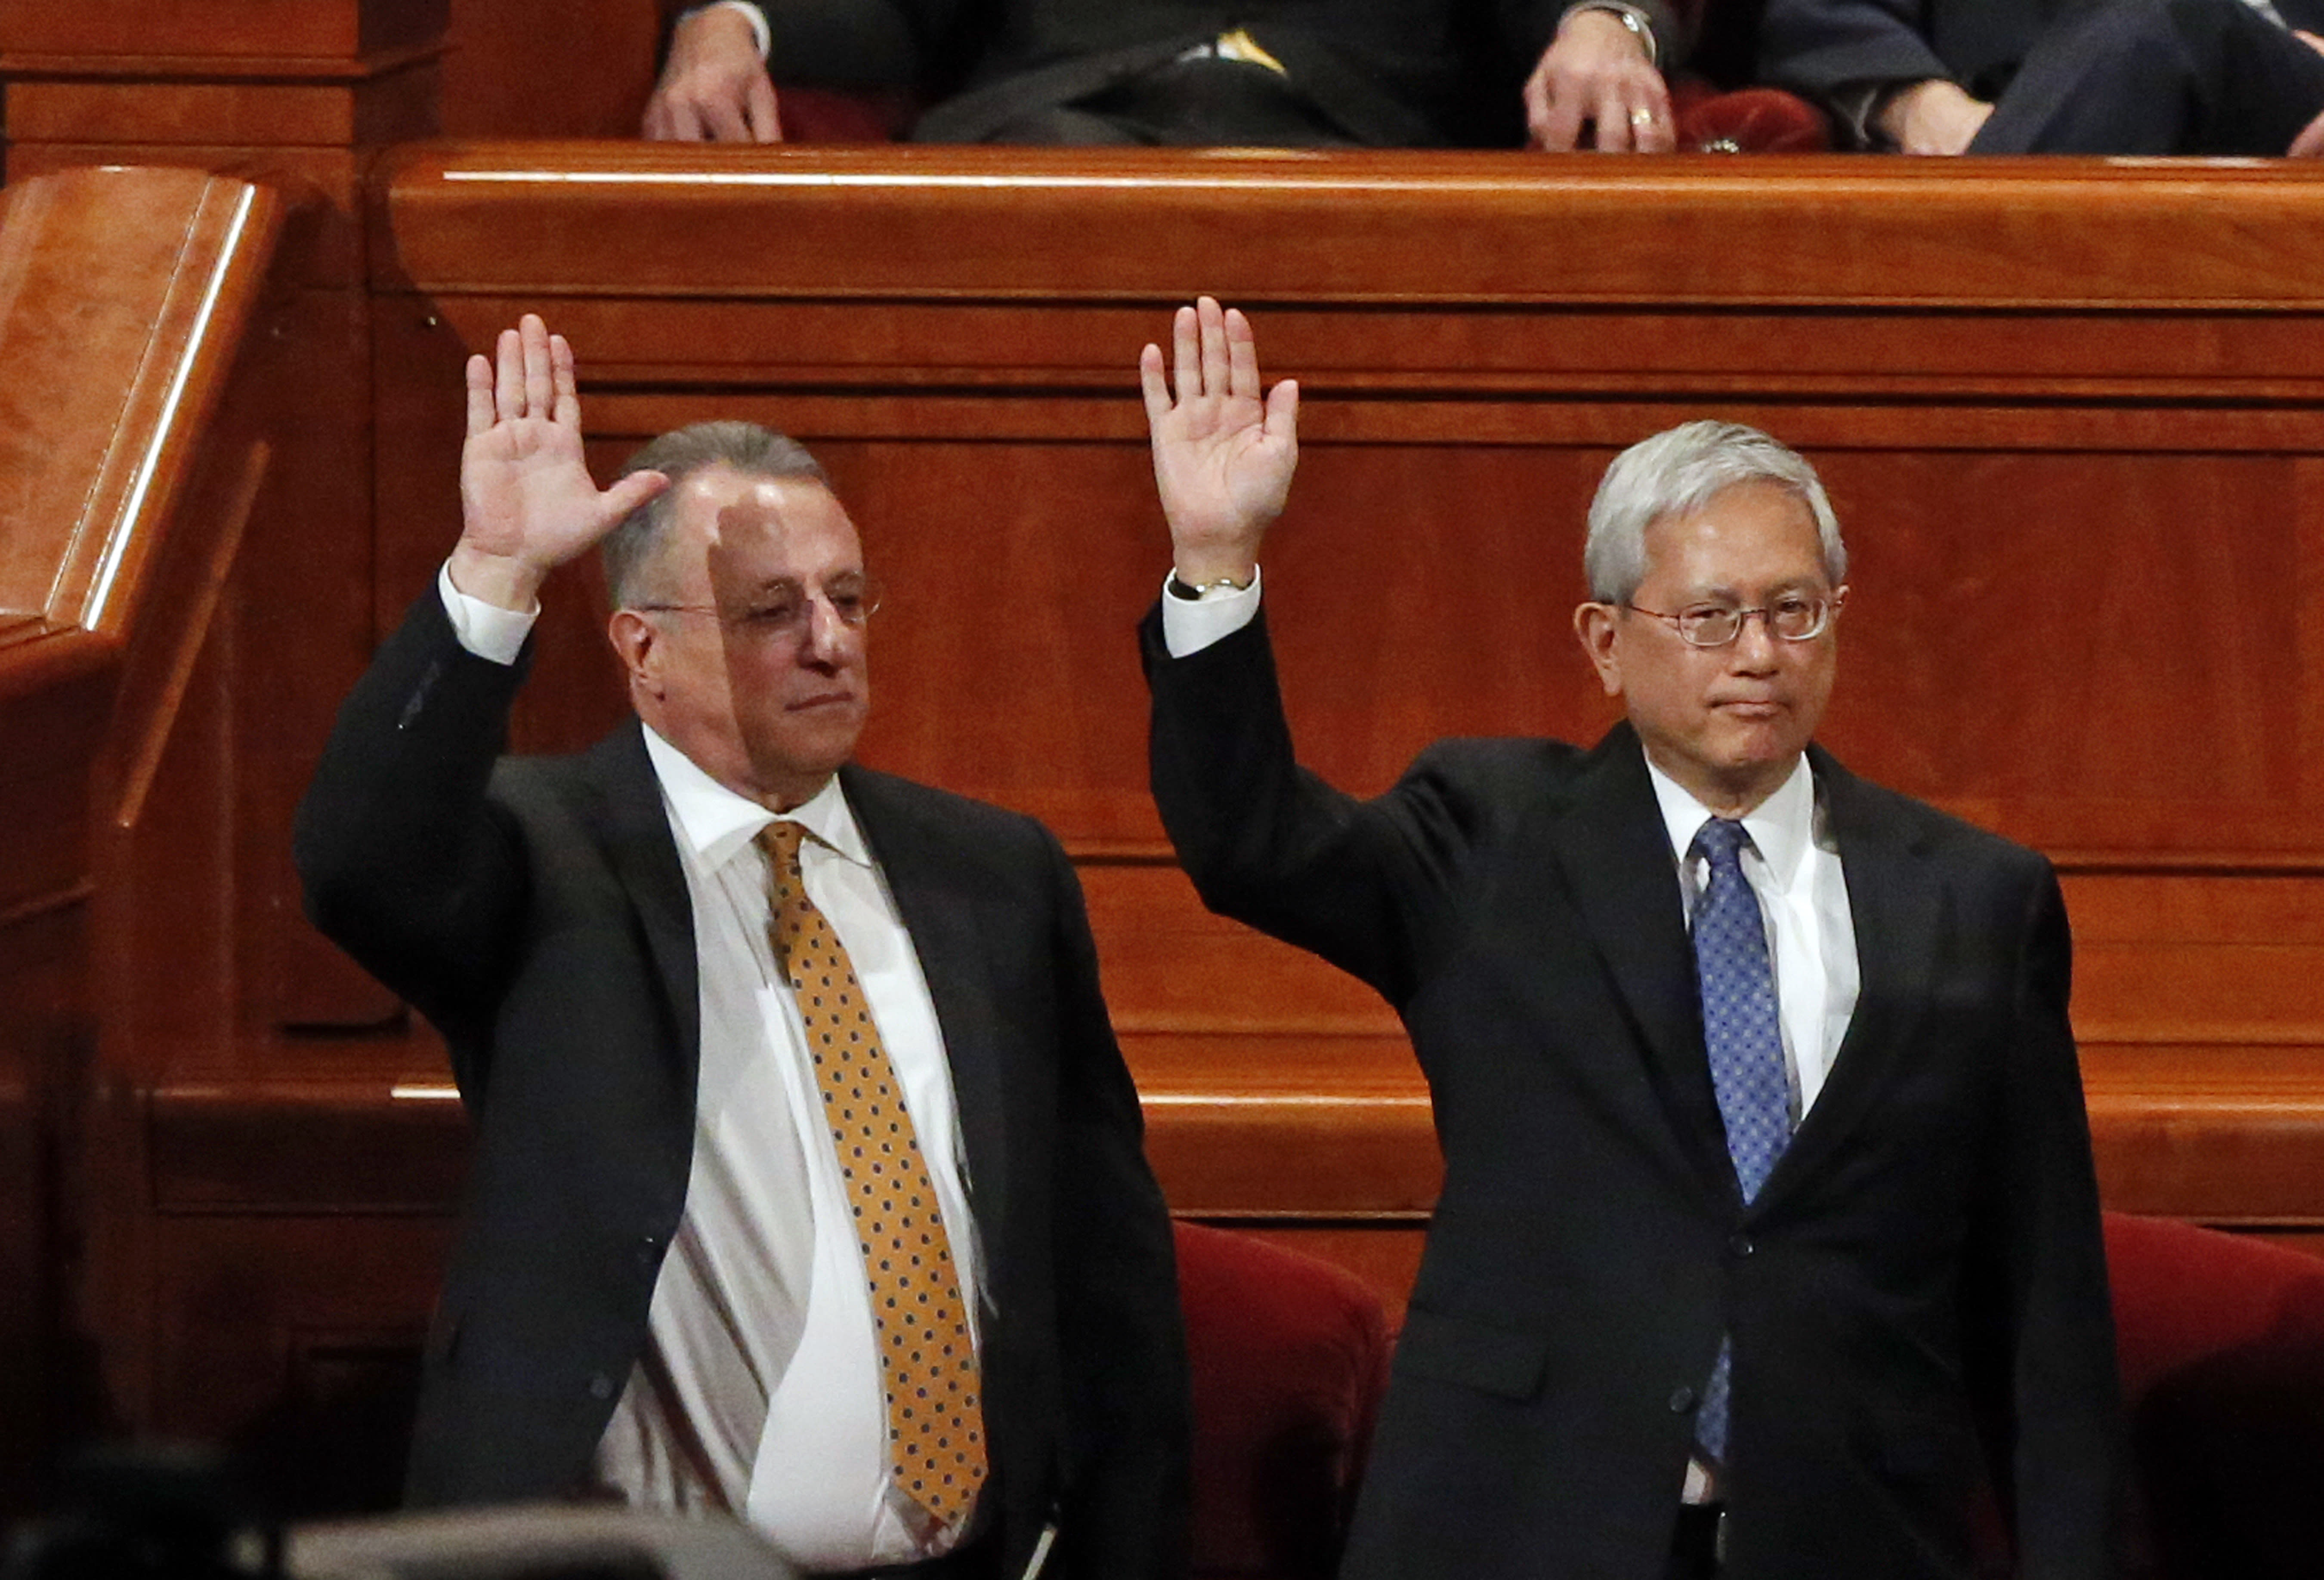 Mormons make history with Brazilian and Asian leaders